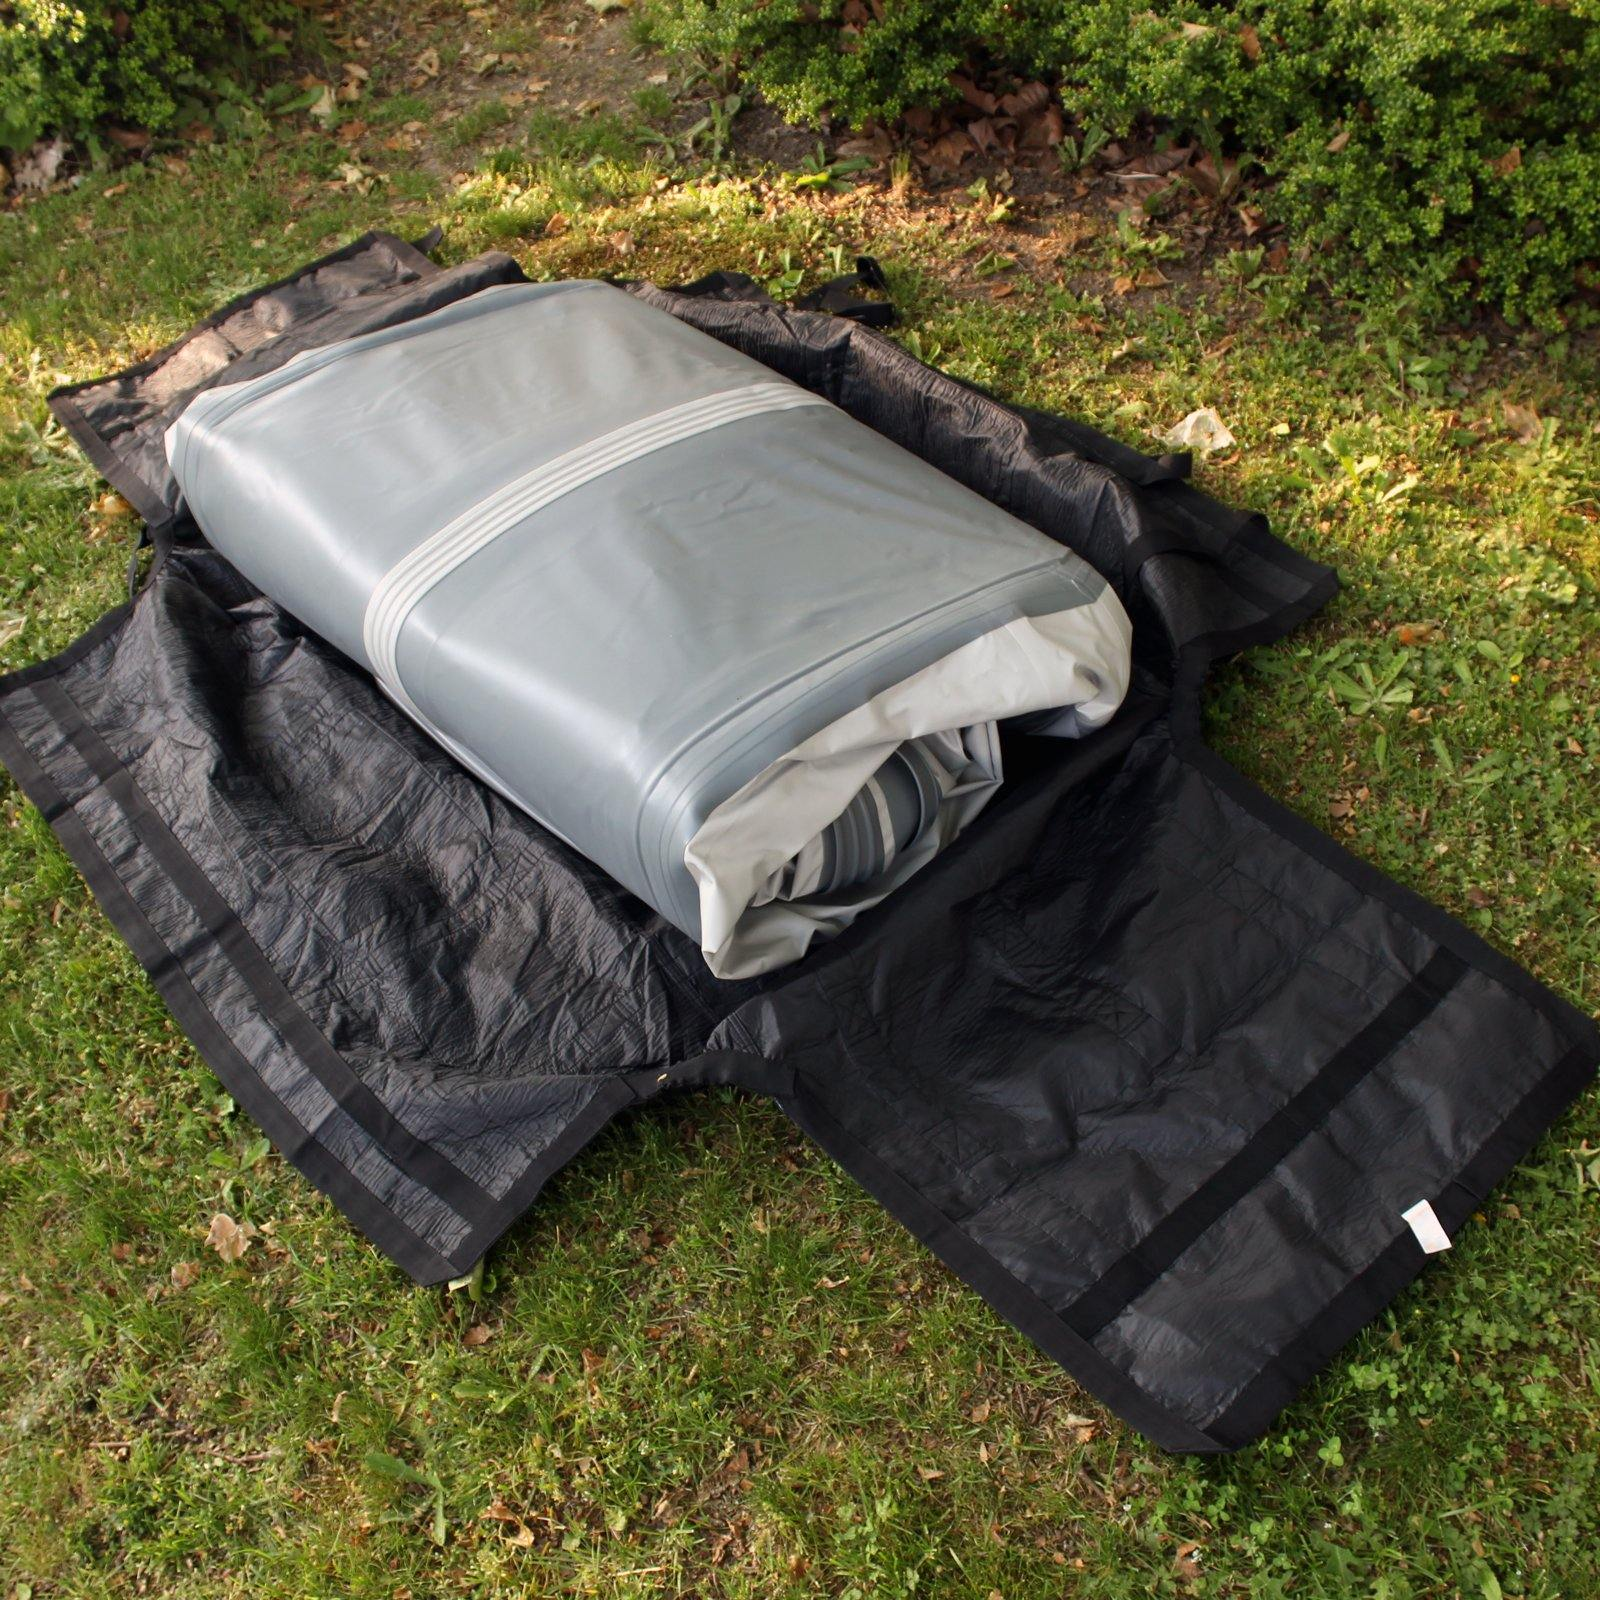 Seamax Foldable Inflatable Boat Reflective Handles Storage and Carrying Bag with Sunlitec Fabric Hull